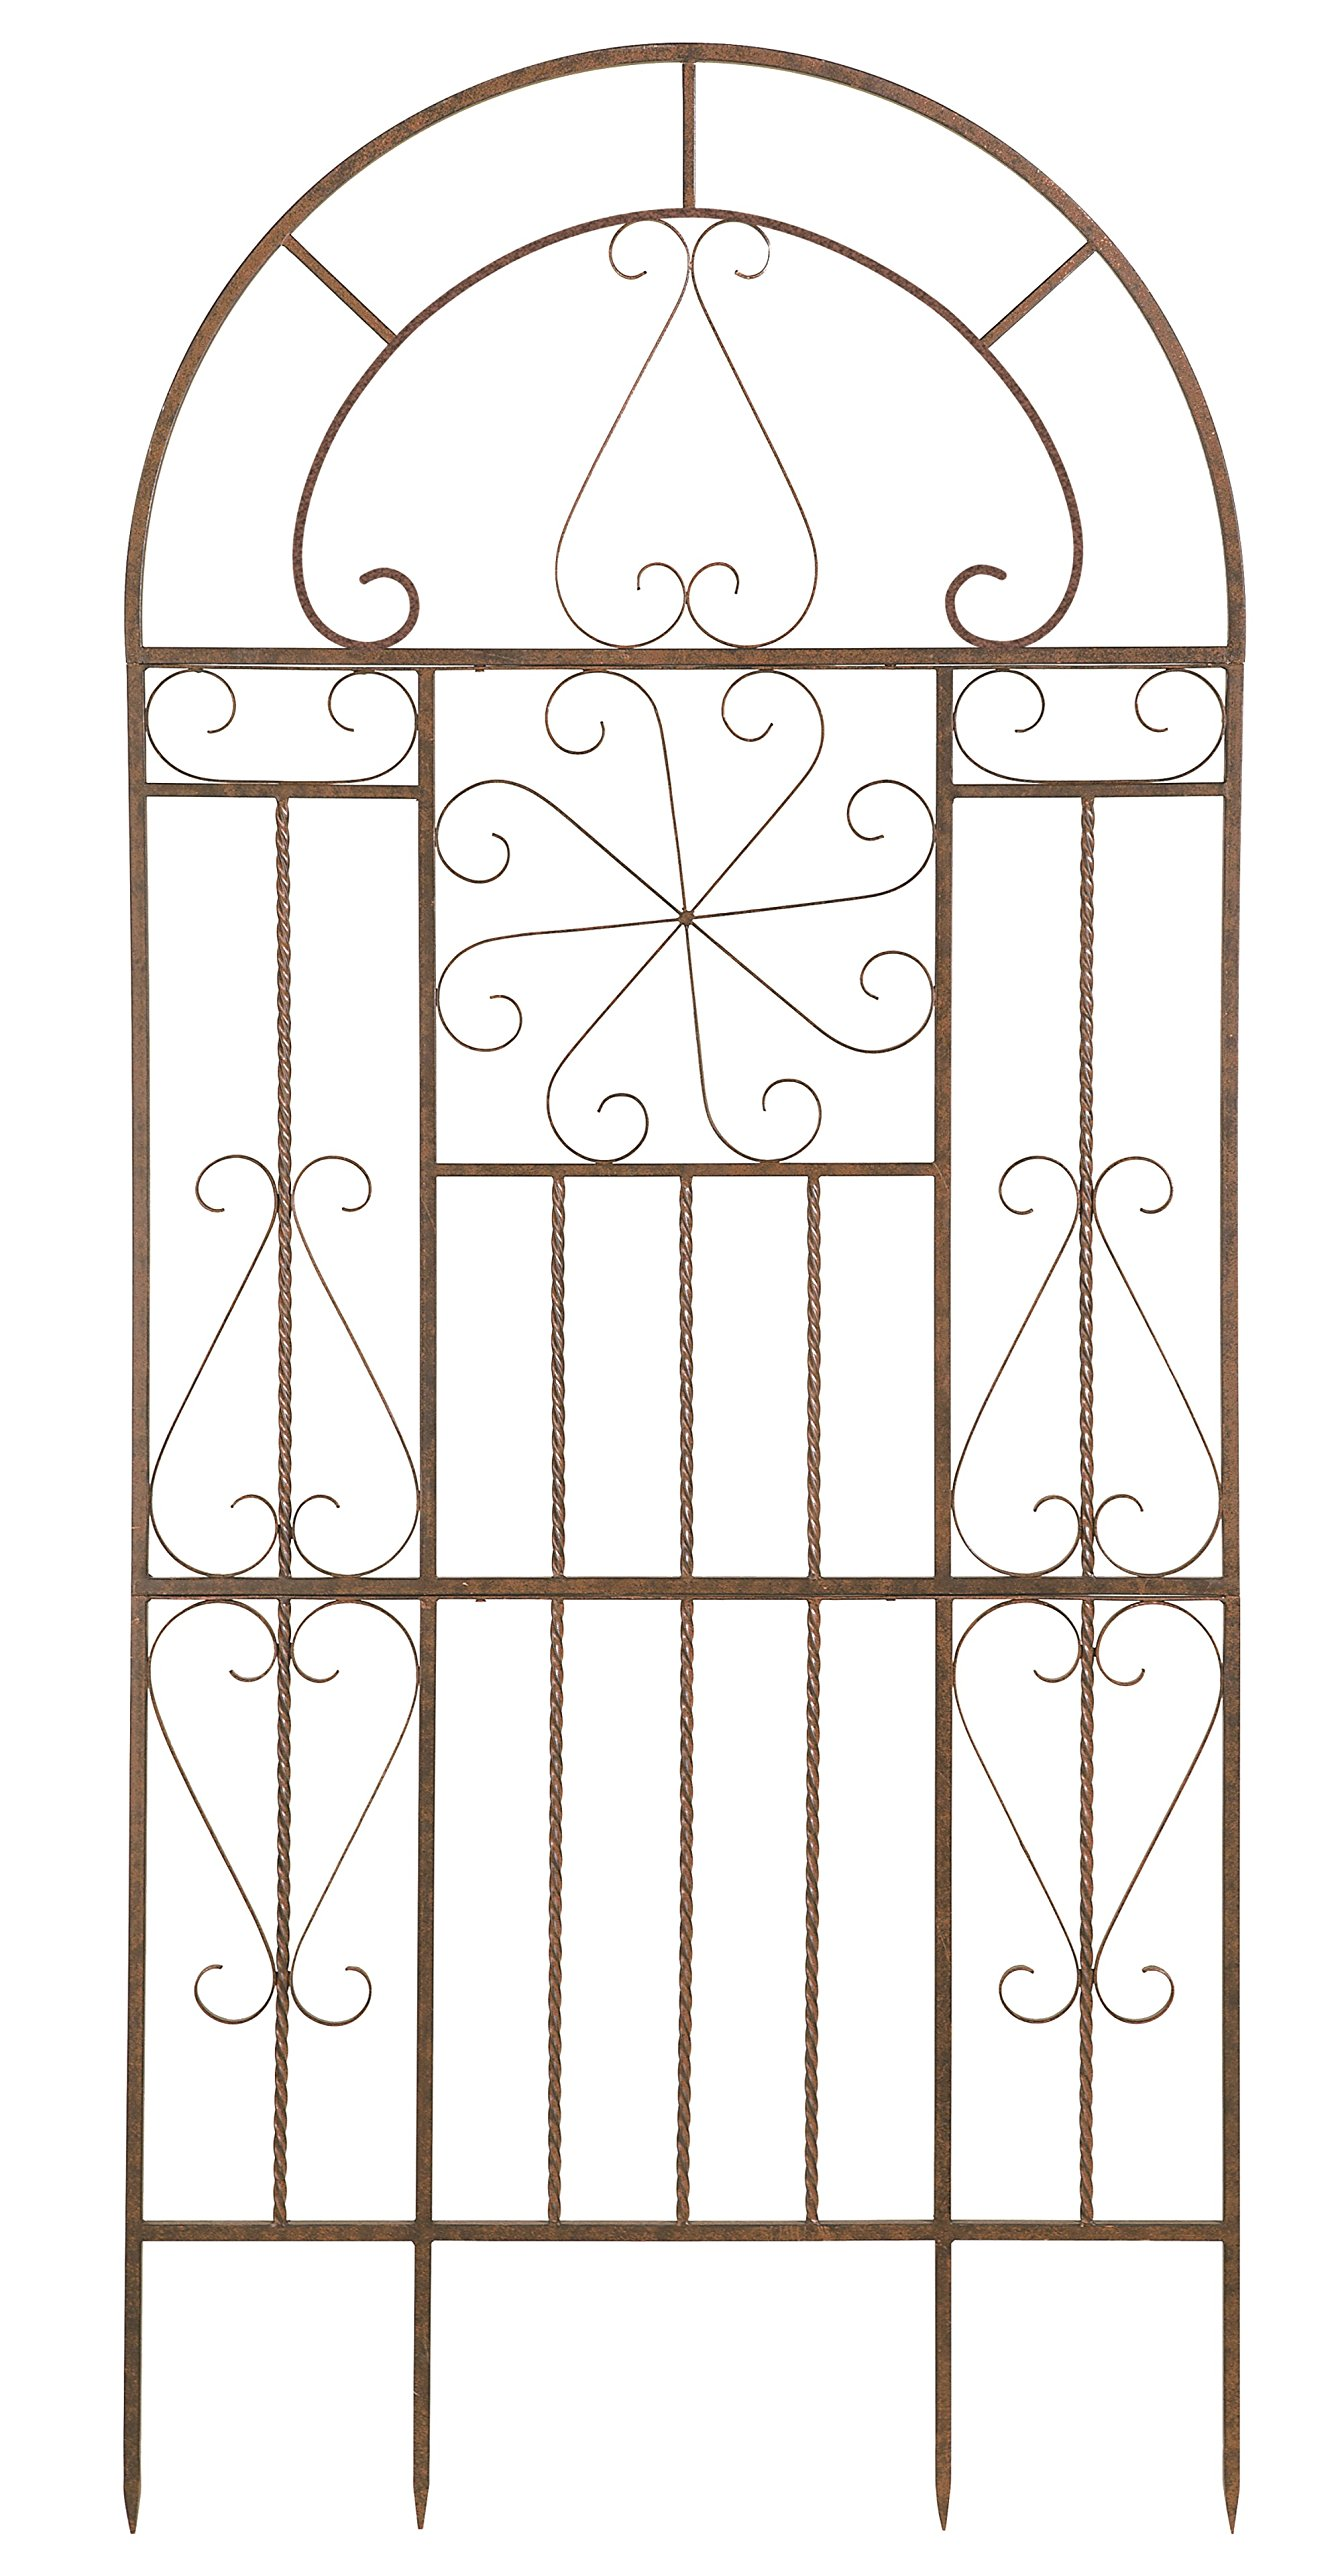 Deer Park Ironworks Kaleidoscope Trellis, Large by Deer Park Ironworks